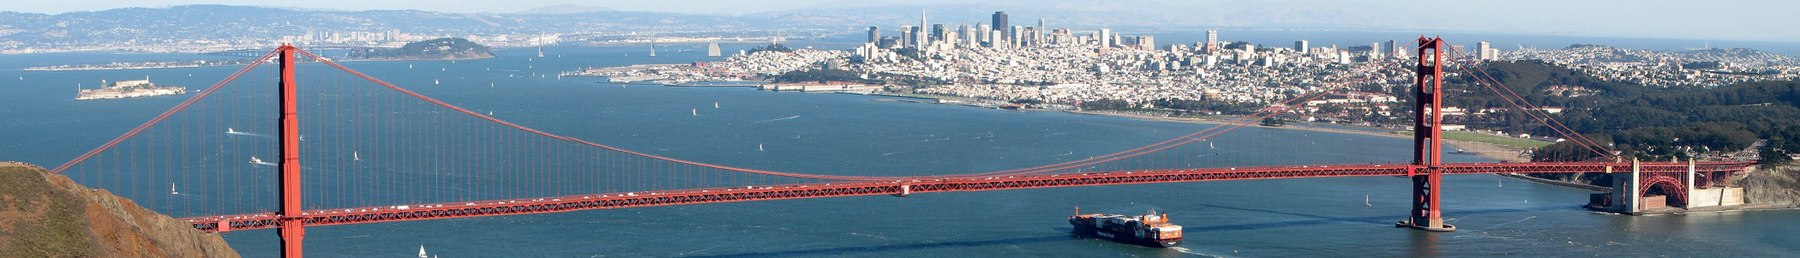 Golden Gate Bridge Wikivoyage banner.jpg